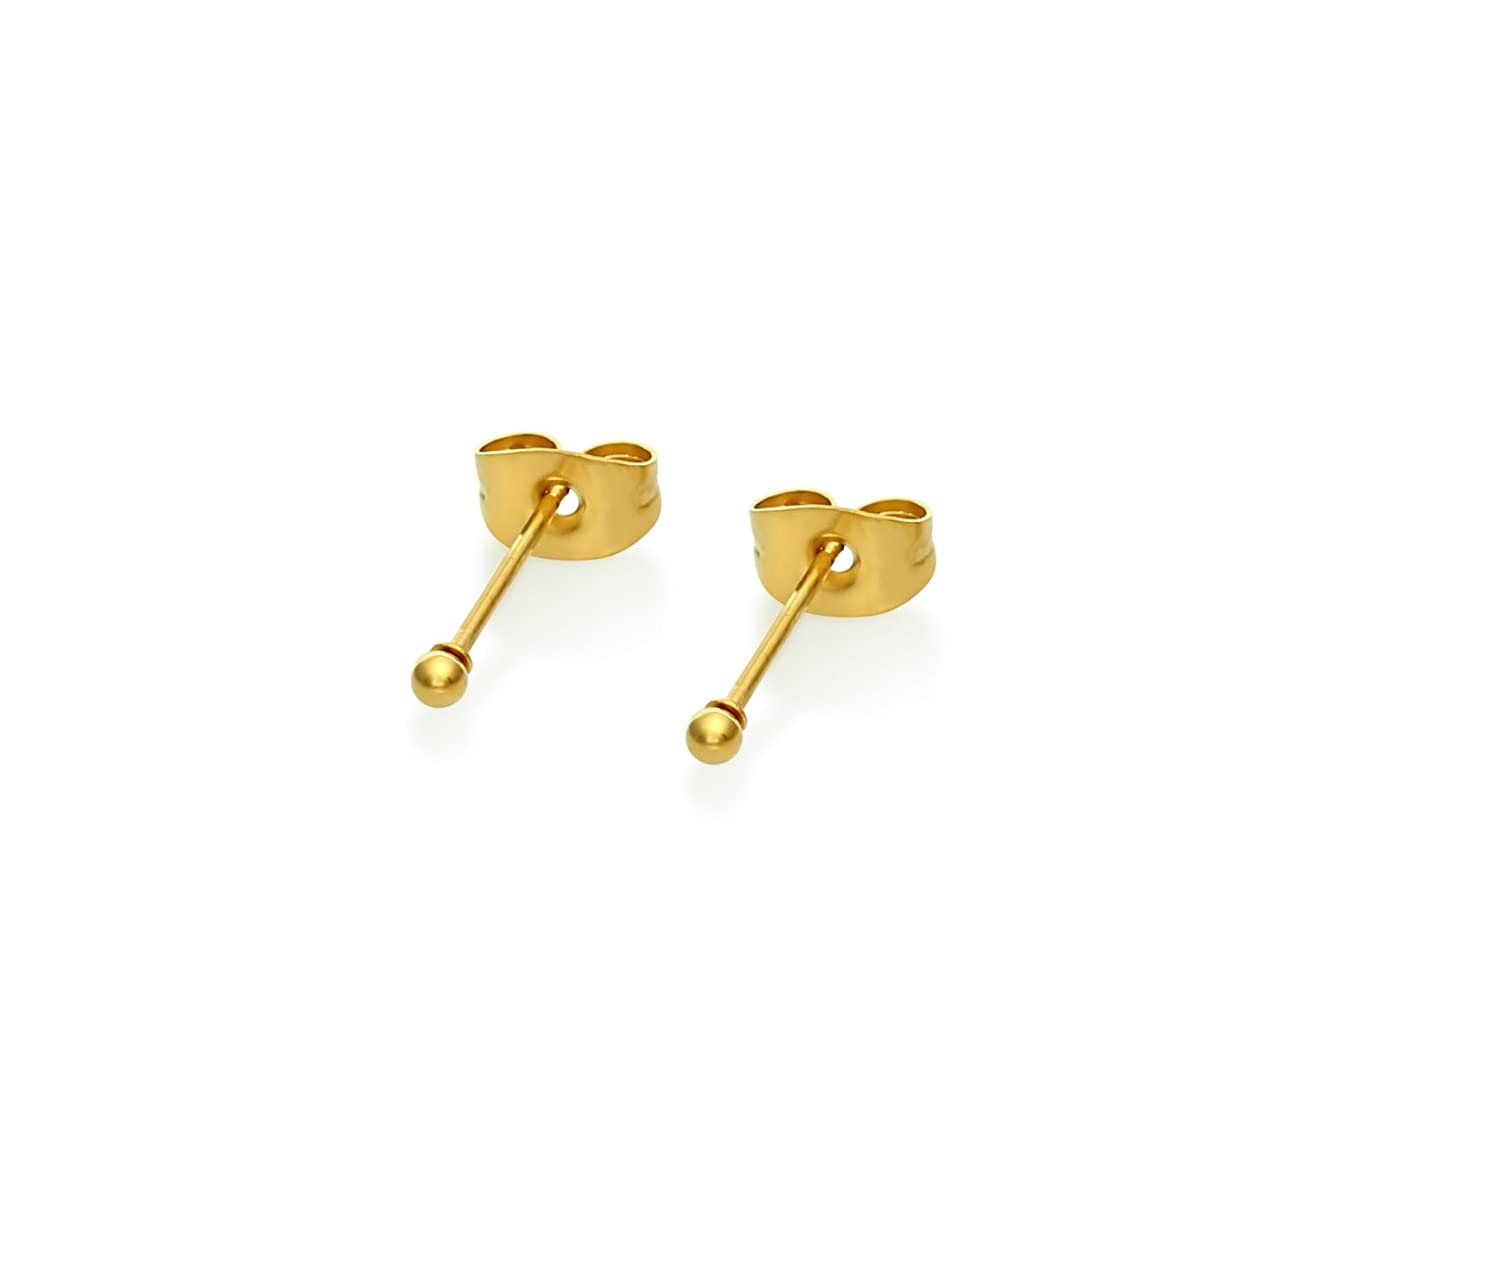 Stainless Steel Gold Toned Round Ball Stud Earrings